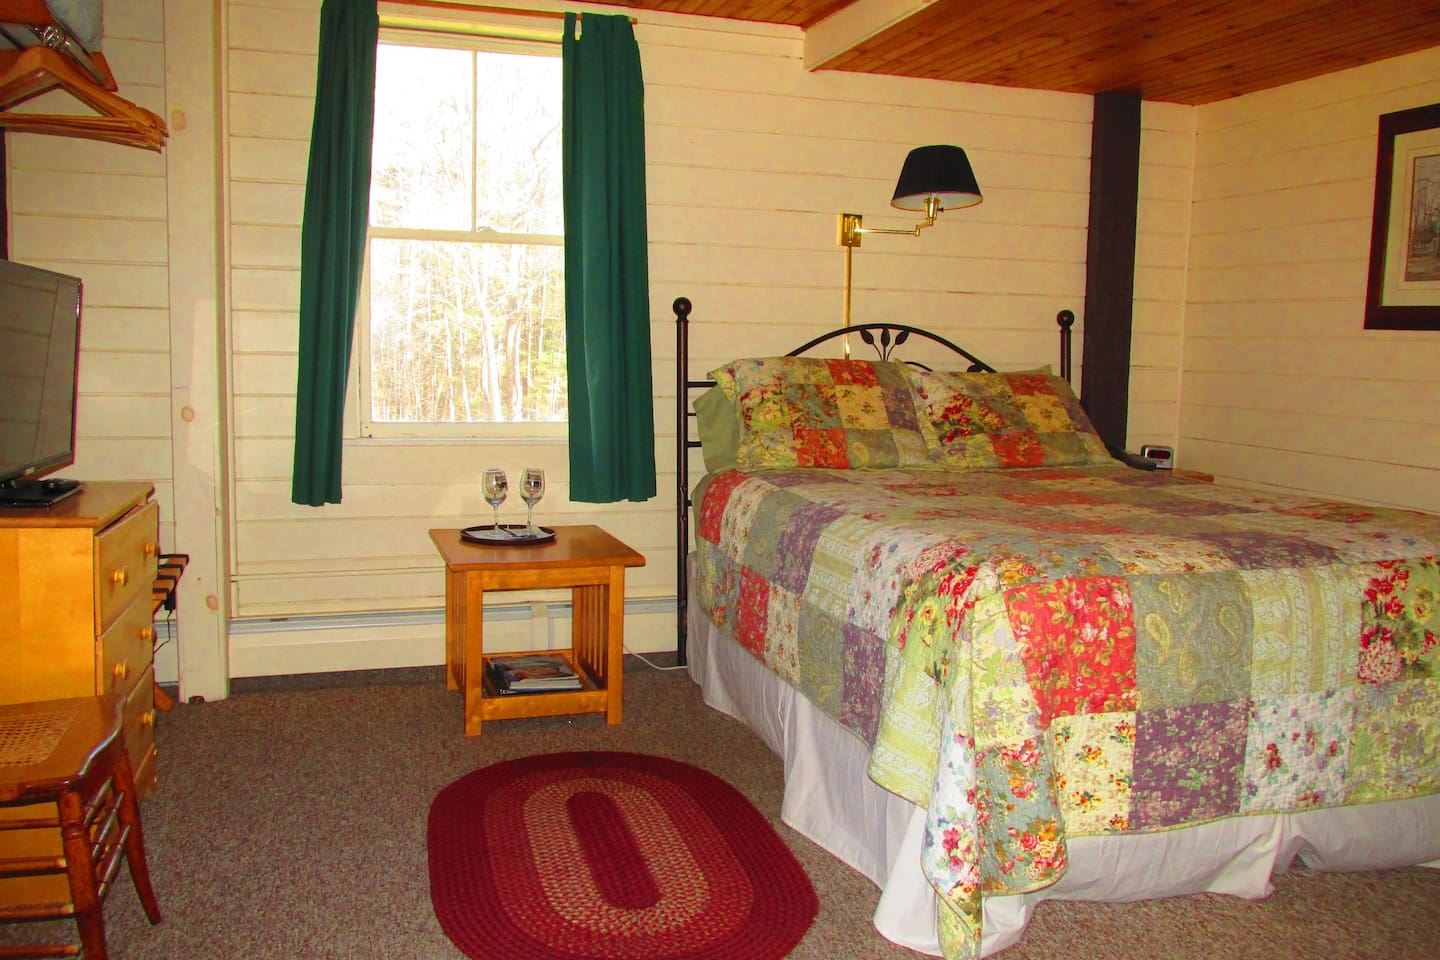 Spacious room with a queen size bed